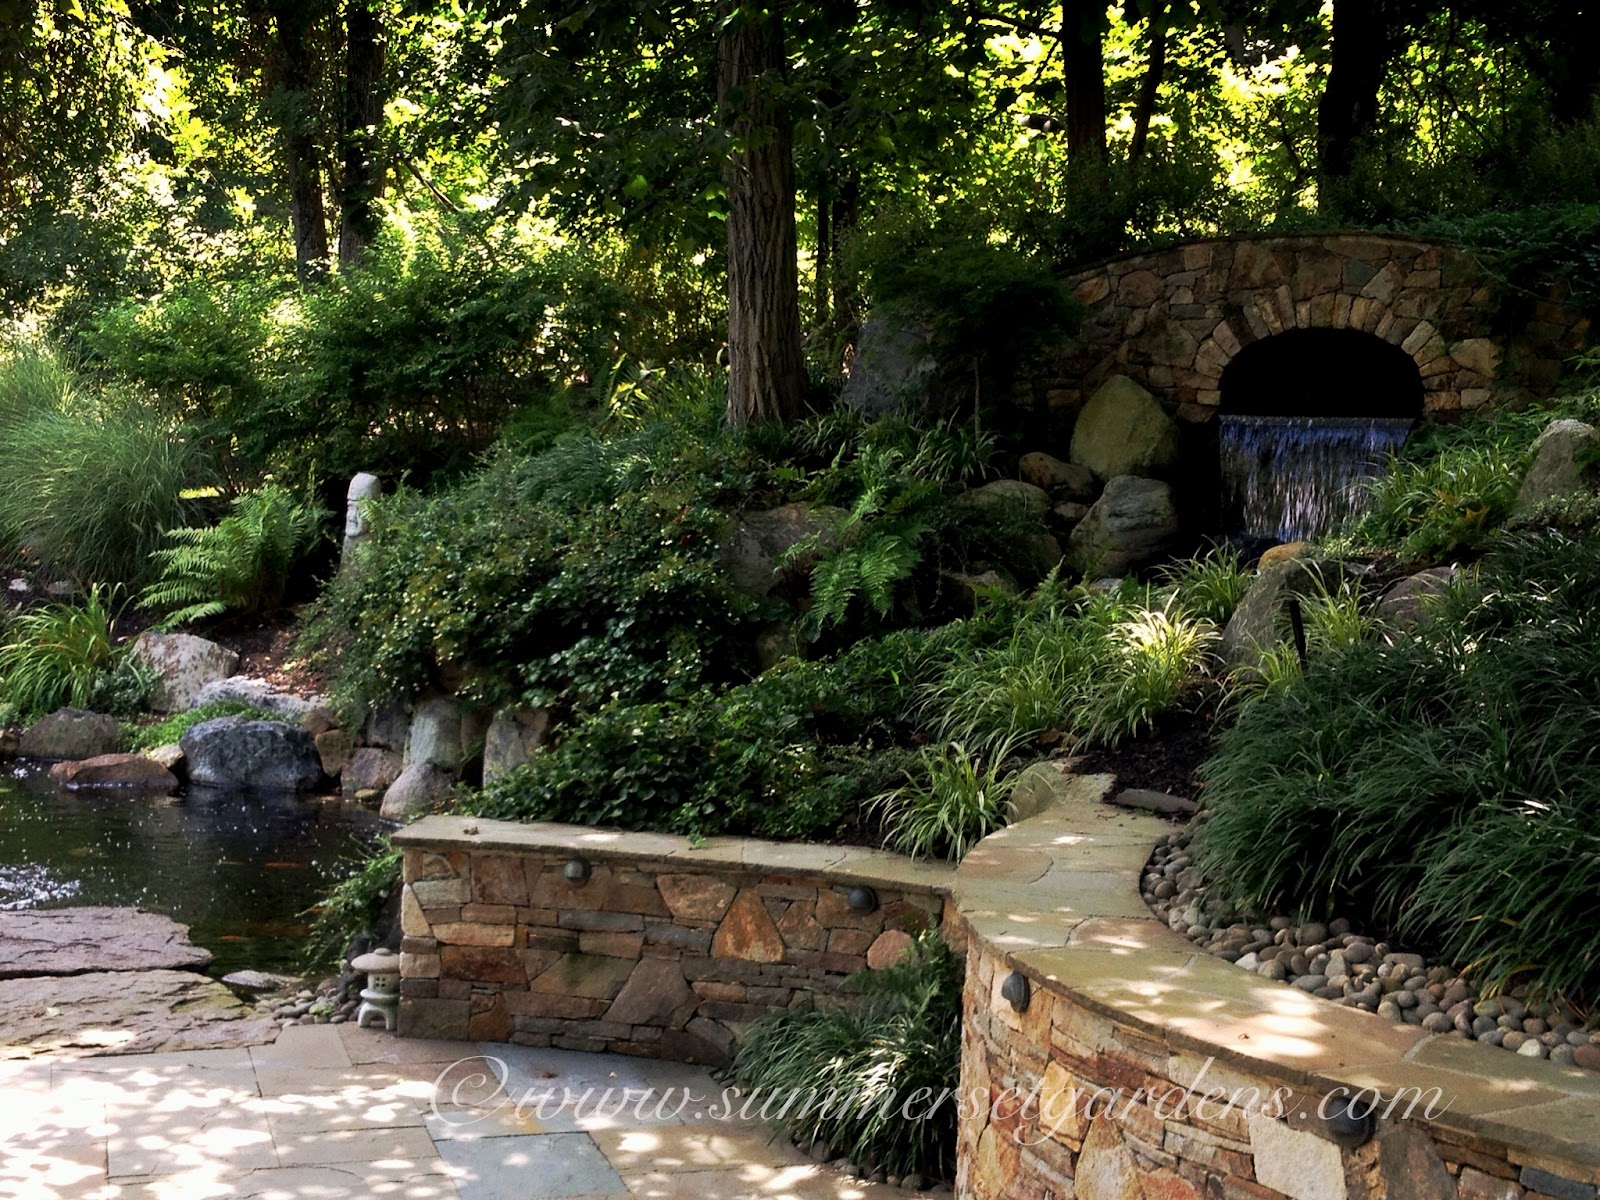 Garden design pond waterfall patio in rockland county ny for Garden waterfall design